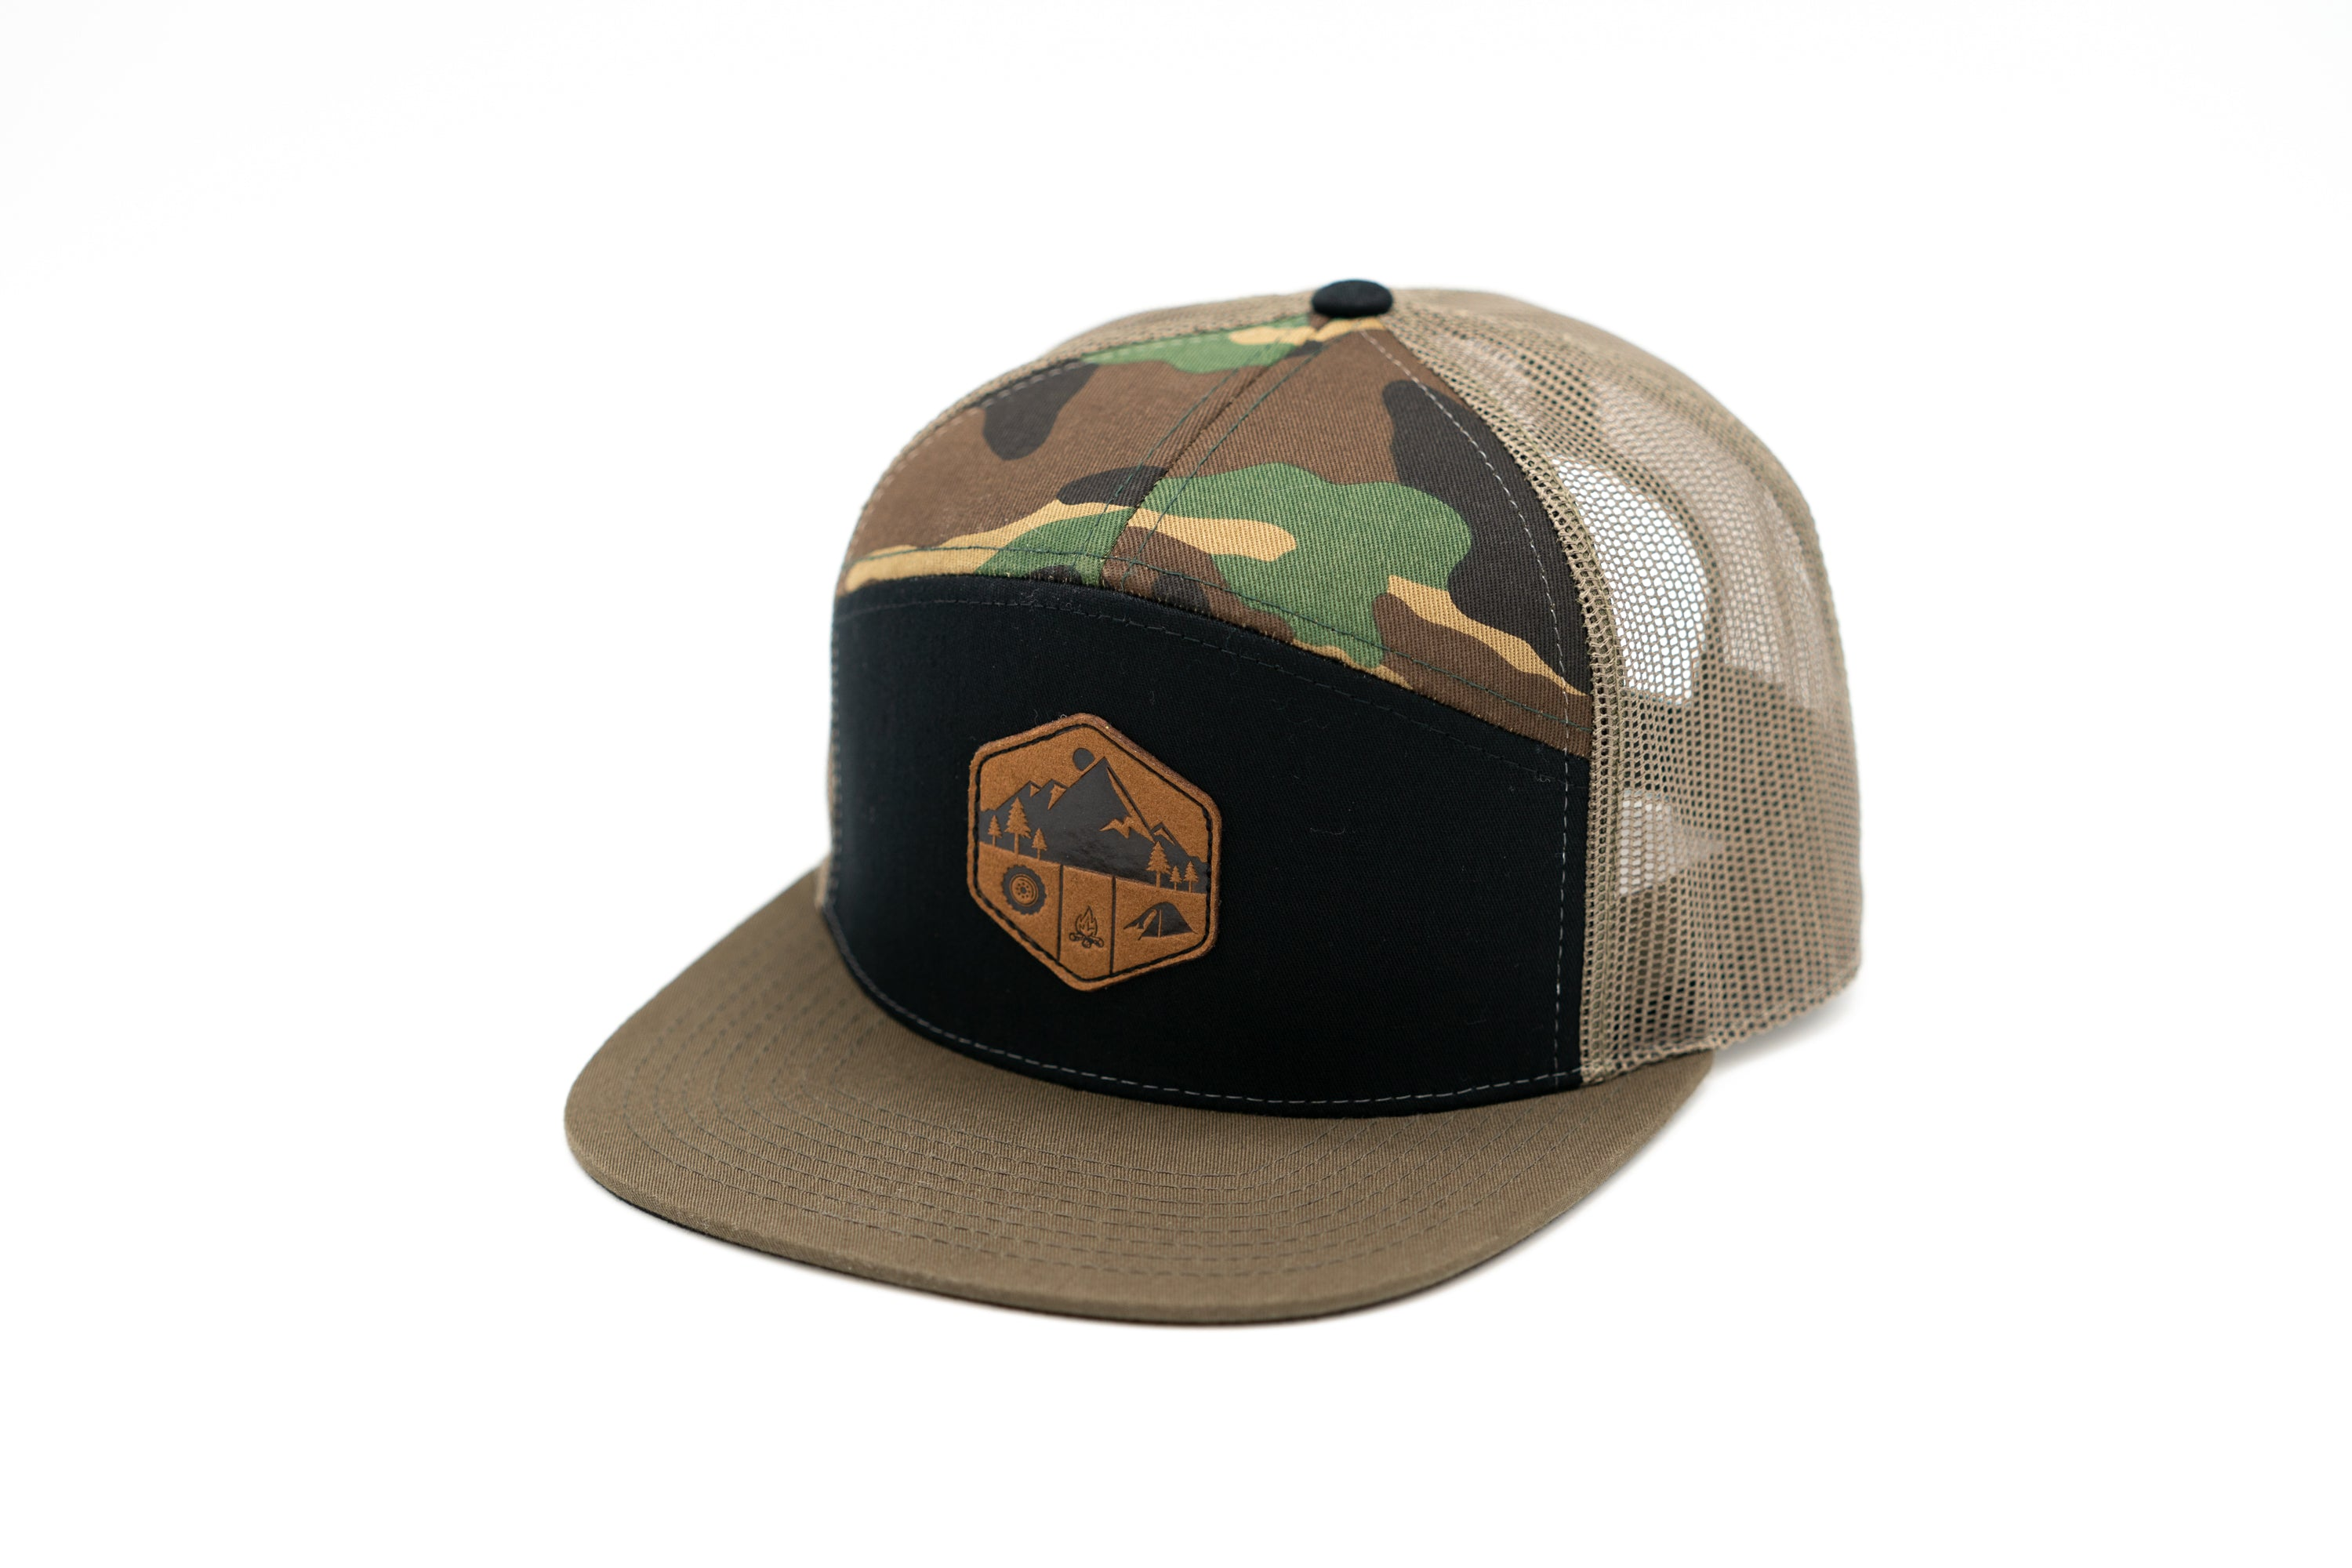 7 Panel Snapback Trucker Hat With Leather Camp Motif Patch - Black Front Panel Camo Top Pannels and Tan Mesh Back